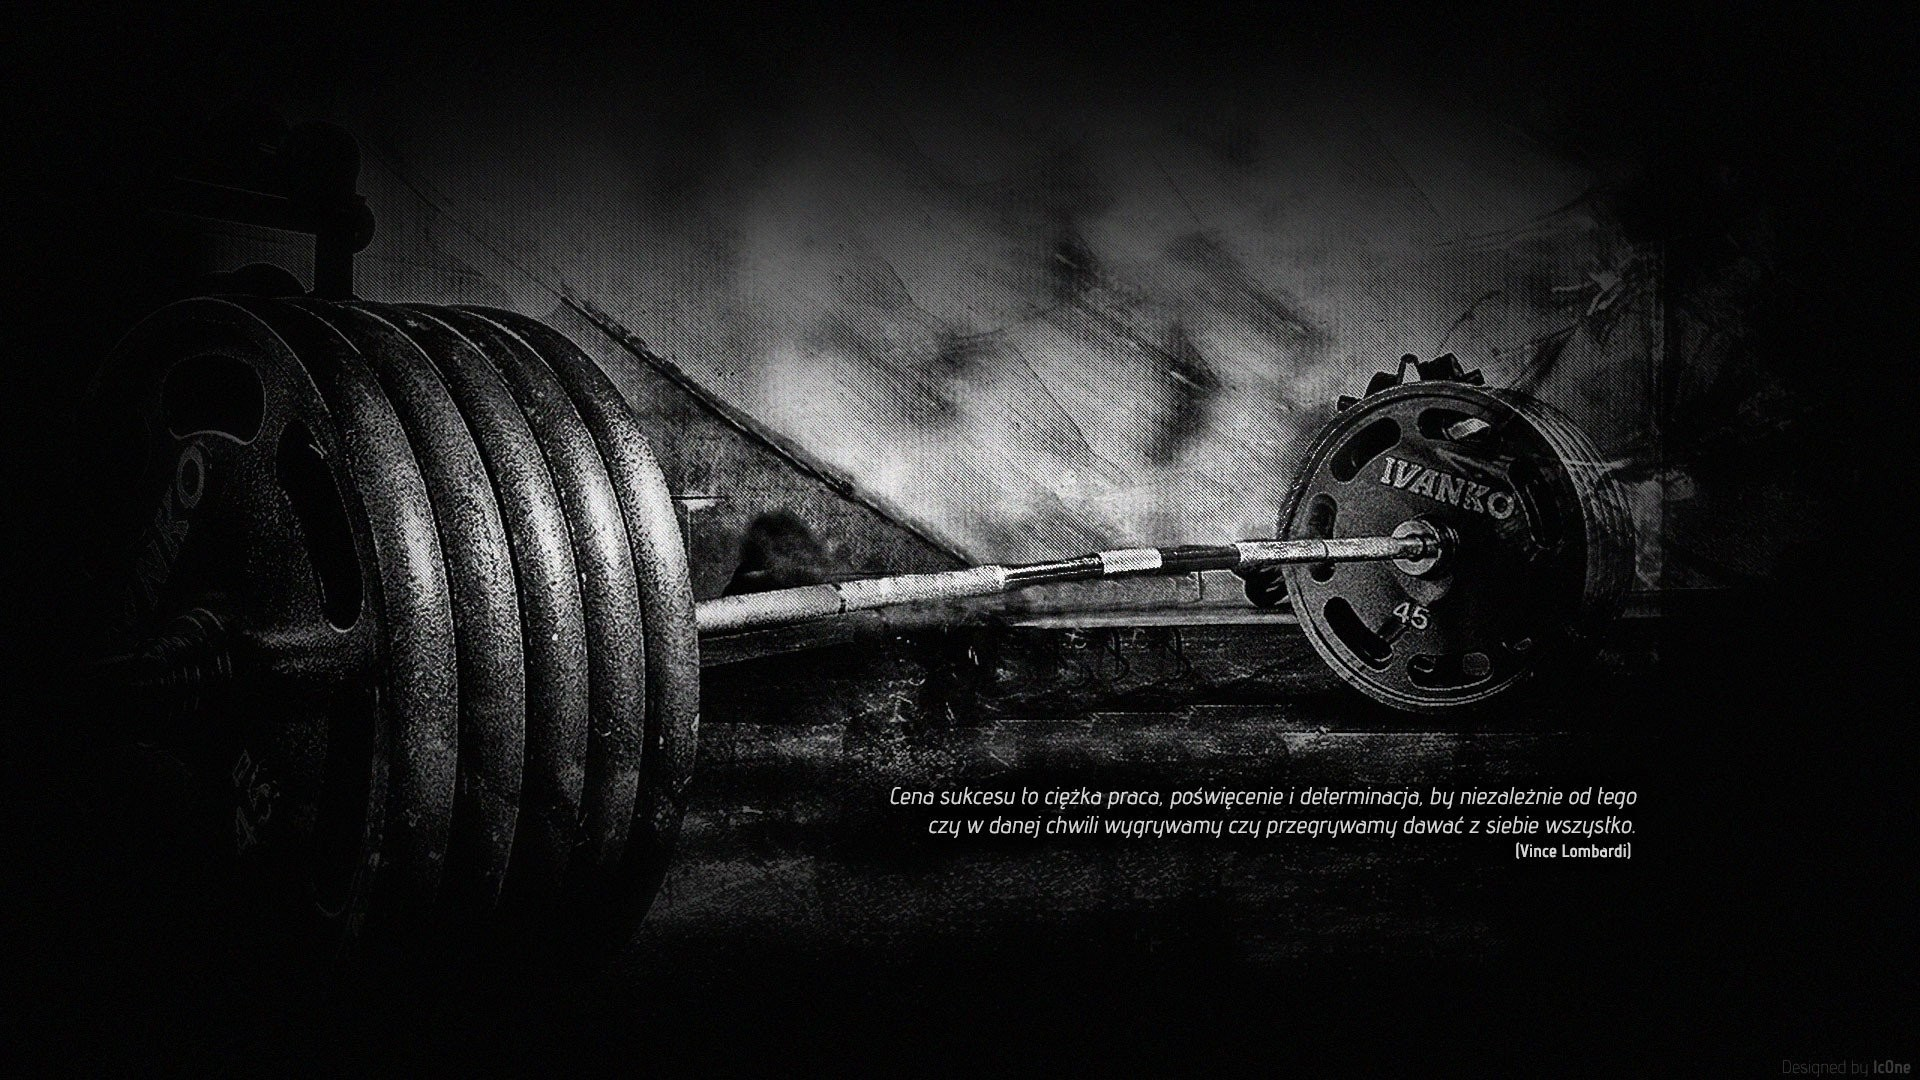 Gym background ·â' Download free beautiful High Resolution